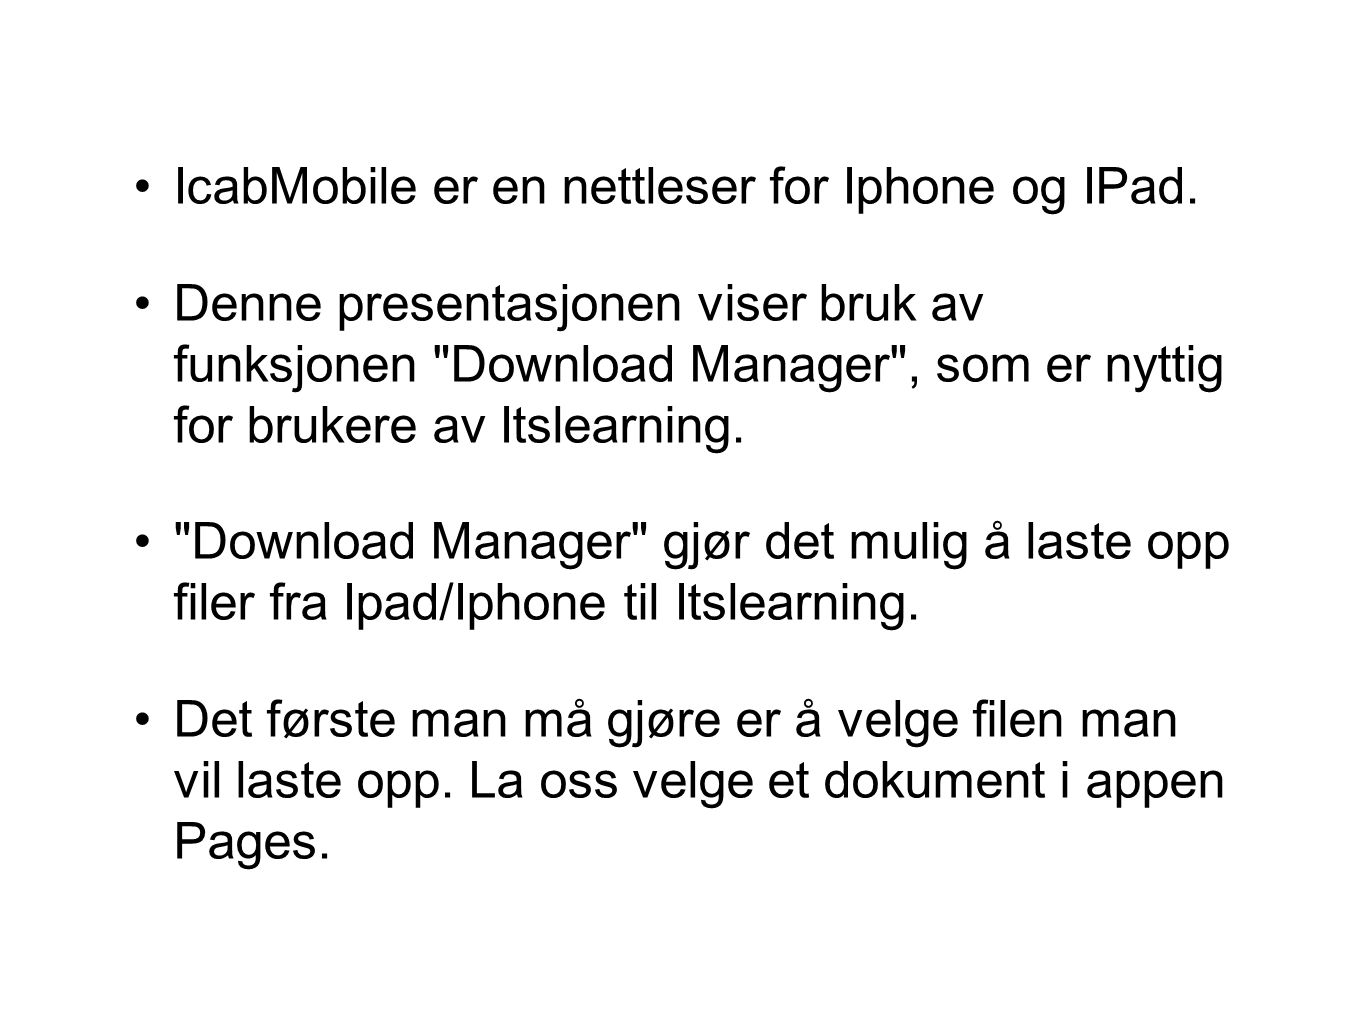 IcabMobile er en nettleser for Iphone og IPad.